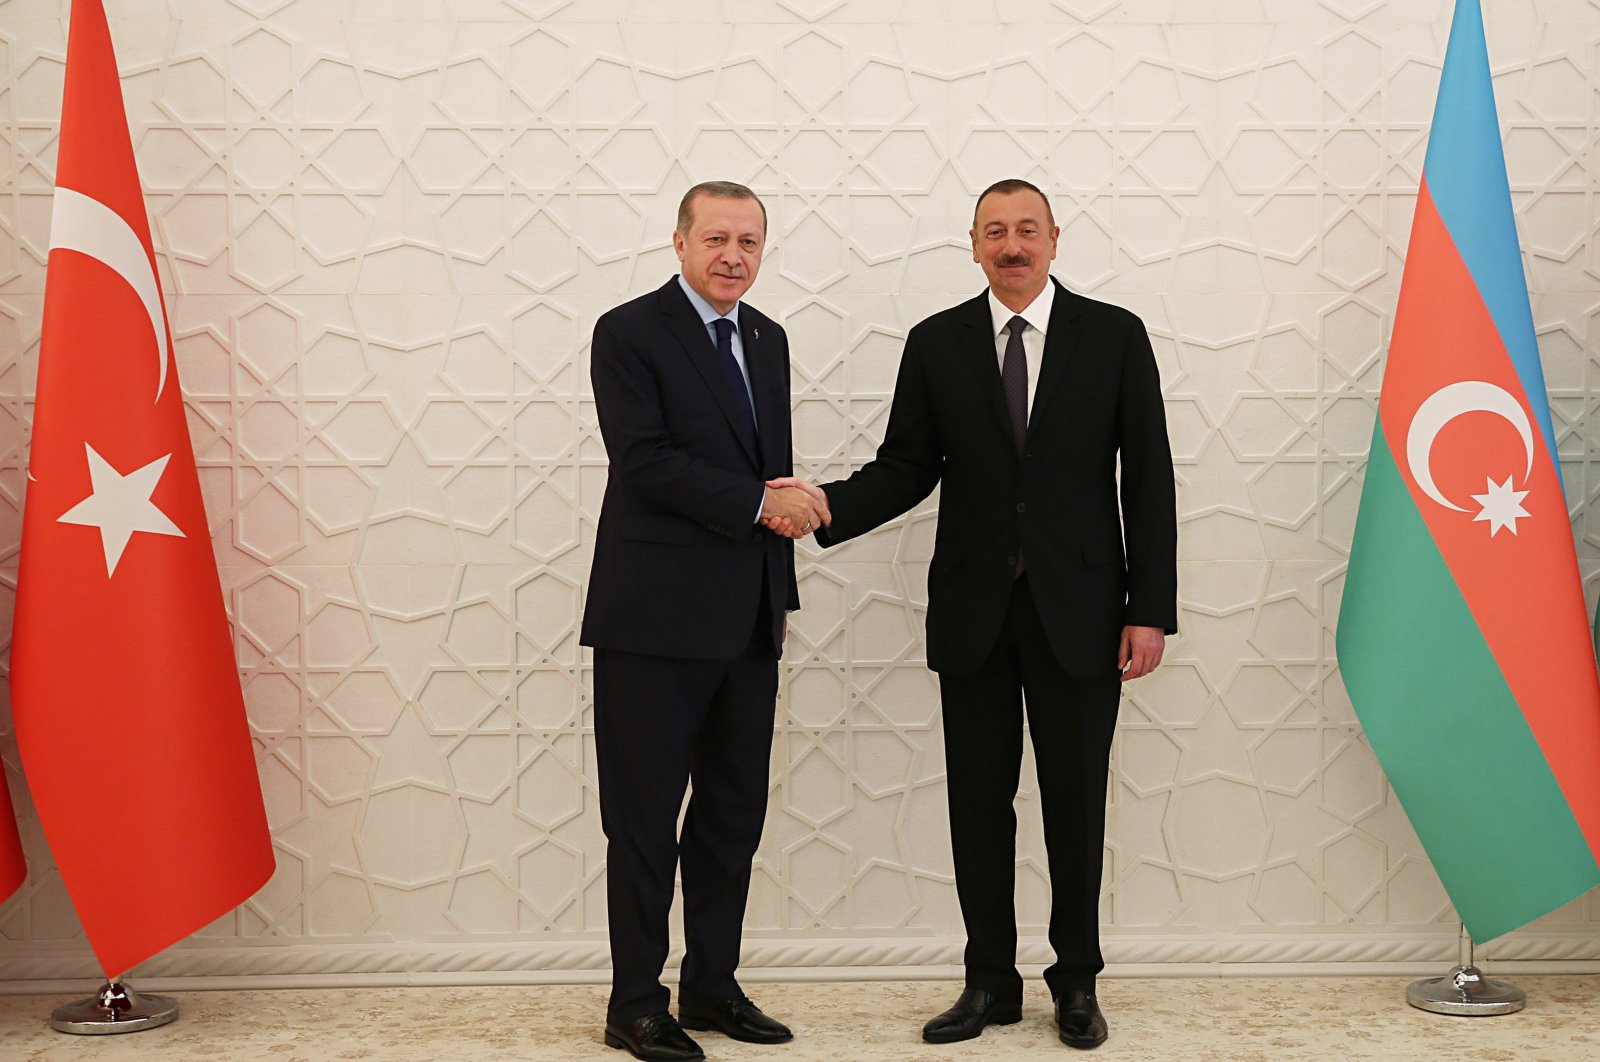 President Recep Tayyip Erdoğan and Azerbaijani President Ilham Aliyev shake hands following a meeting at the Presidential Complex in Ankara, Turkey, Feb. 12, 2020. (Presidency handout)